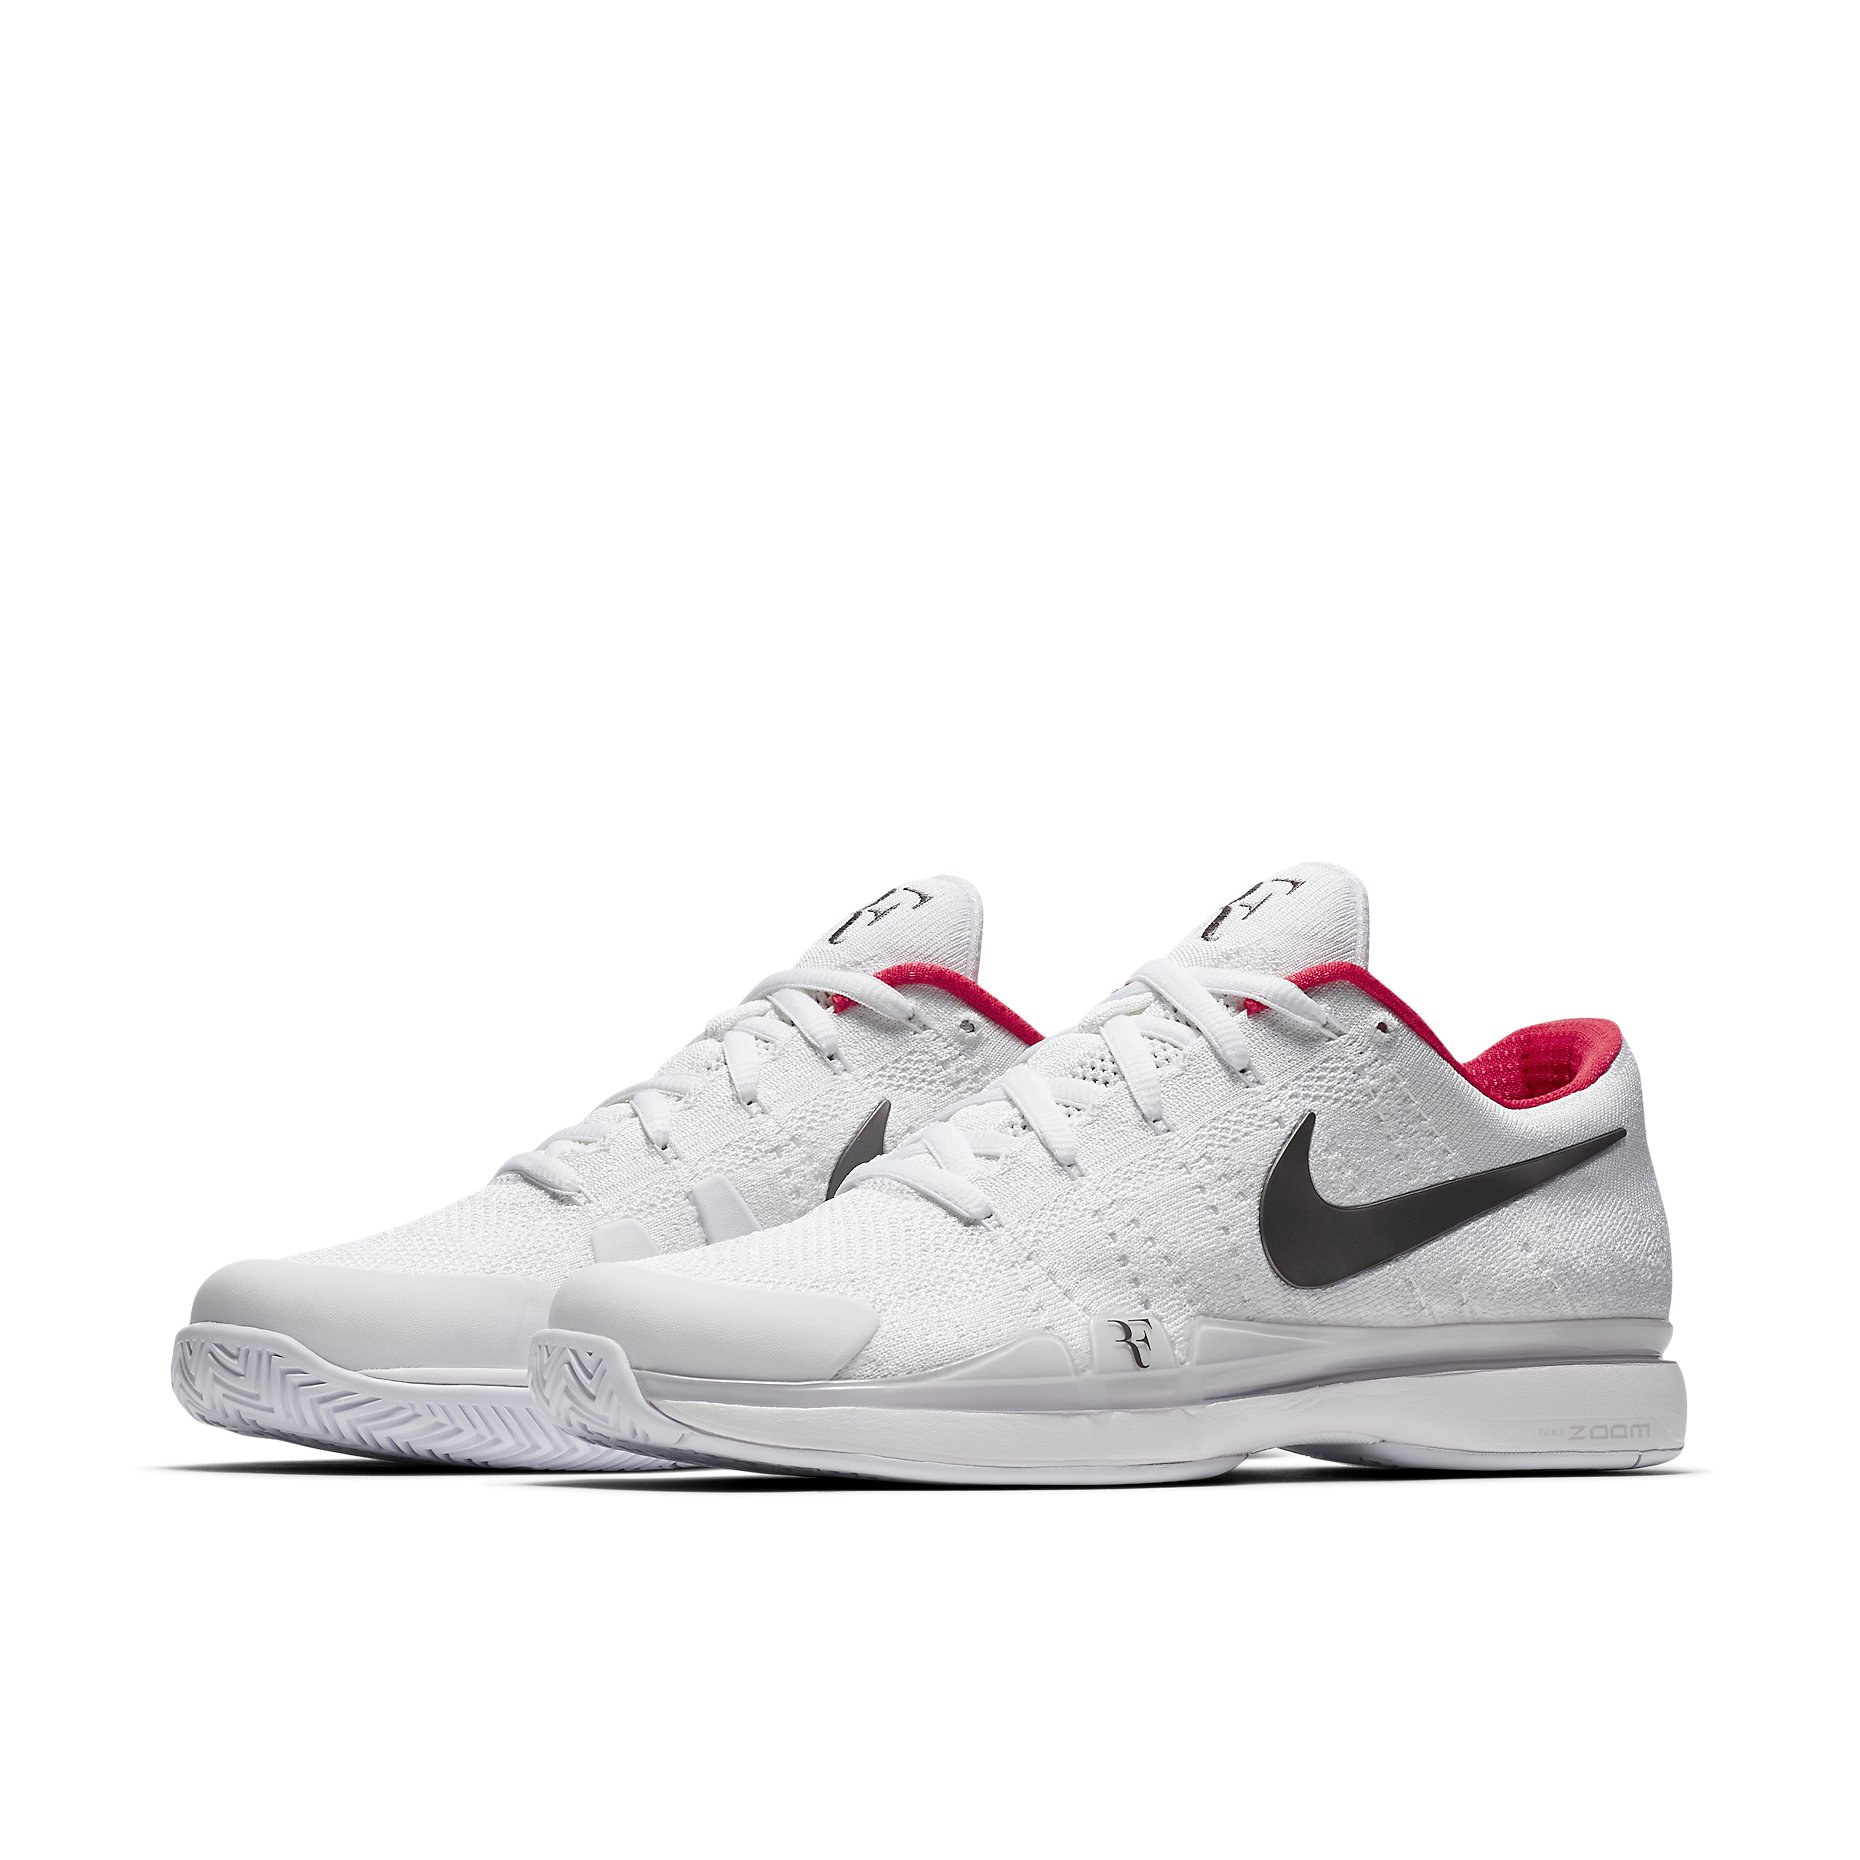 info for abc3c acfe7 nikecourt-zoom-vapor-flyknit-hard-court-qs-tennis-